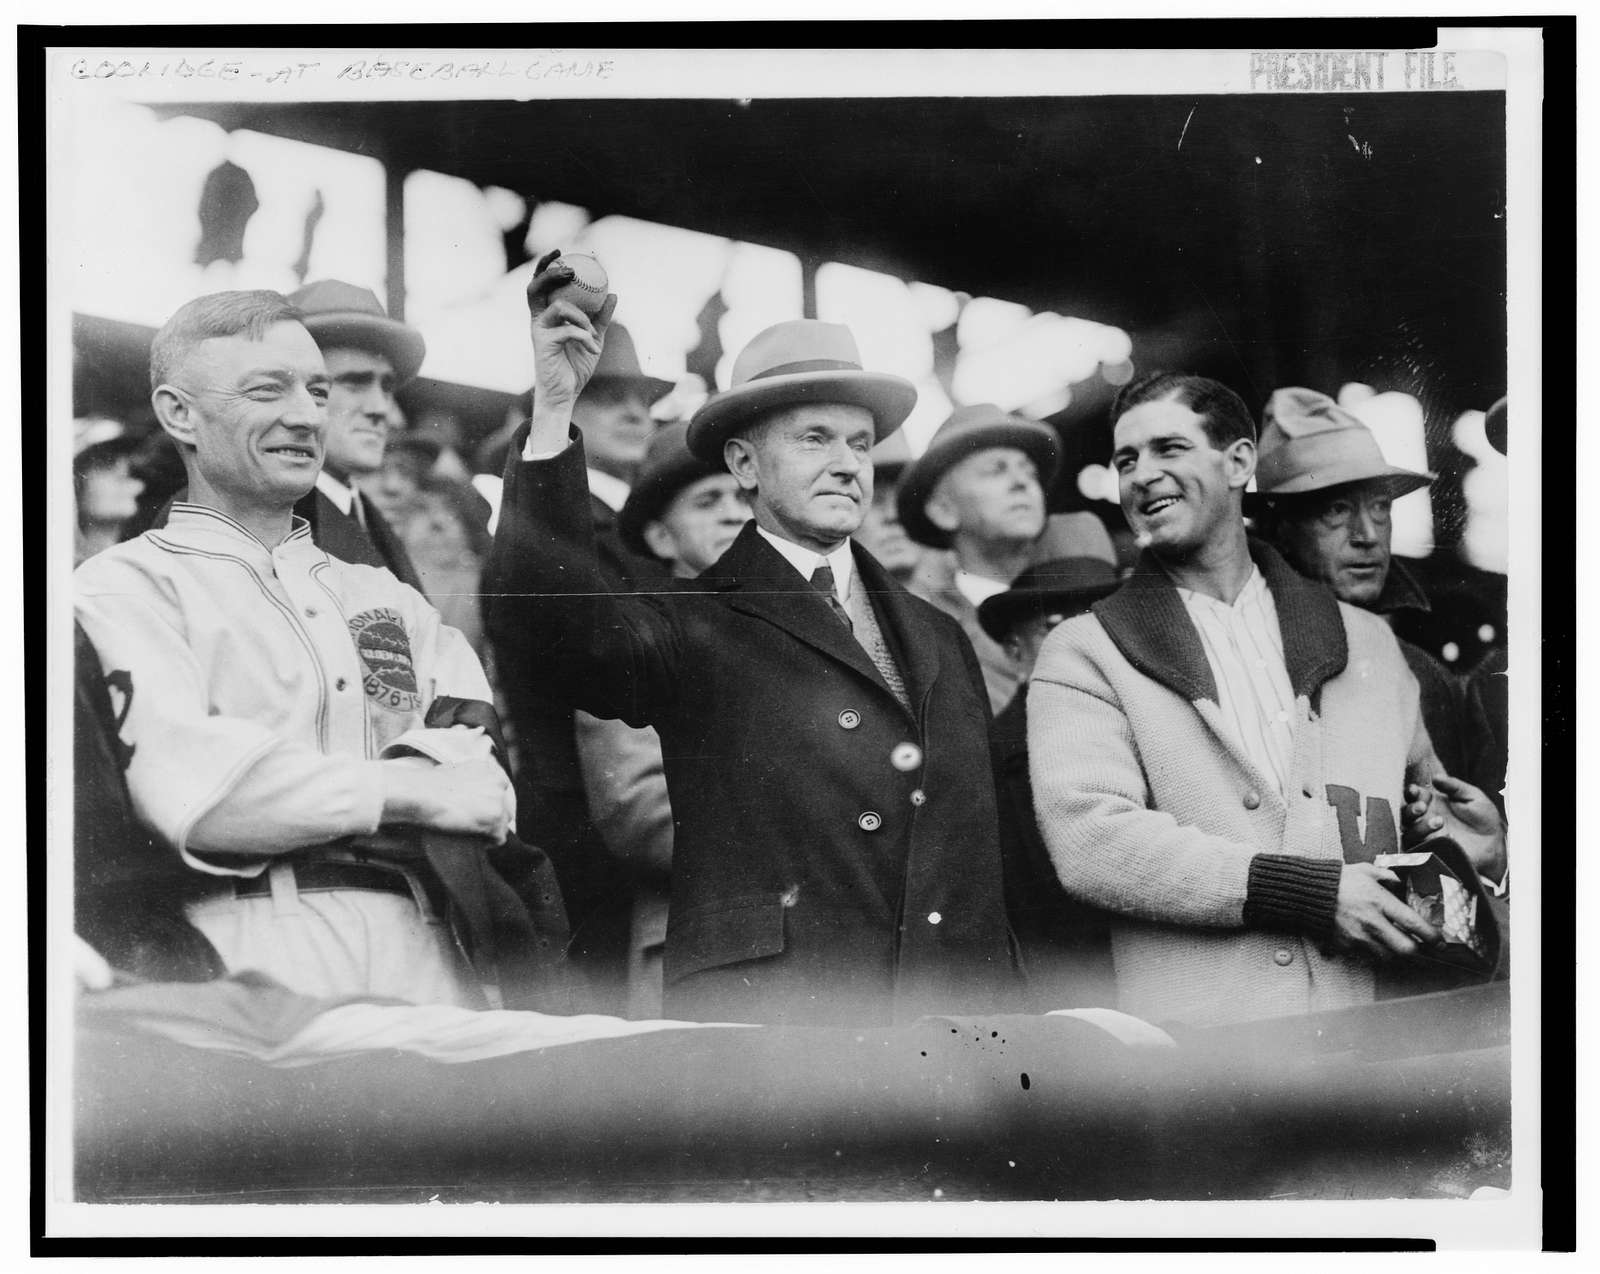 [Calvin Coolidge, half length, standing, facing slightly right, holding up baseball at baseball game prior to opening game, 1925. L.to R.: Bill McKechnie, Coolidge, Bucky Harris]